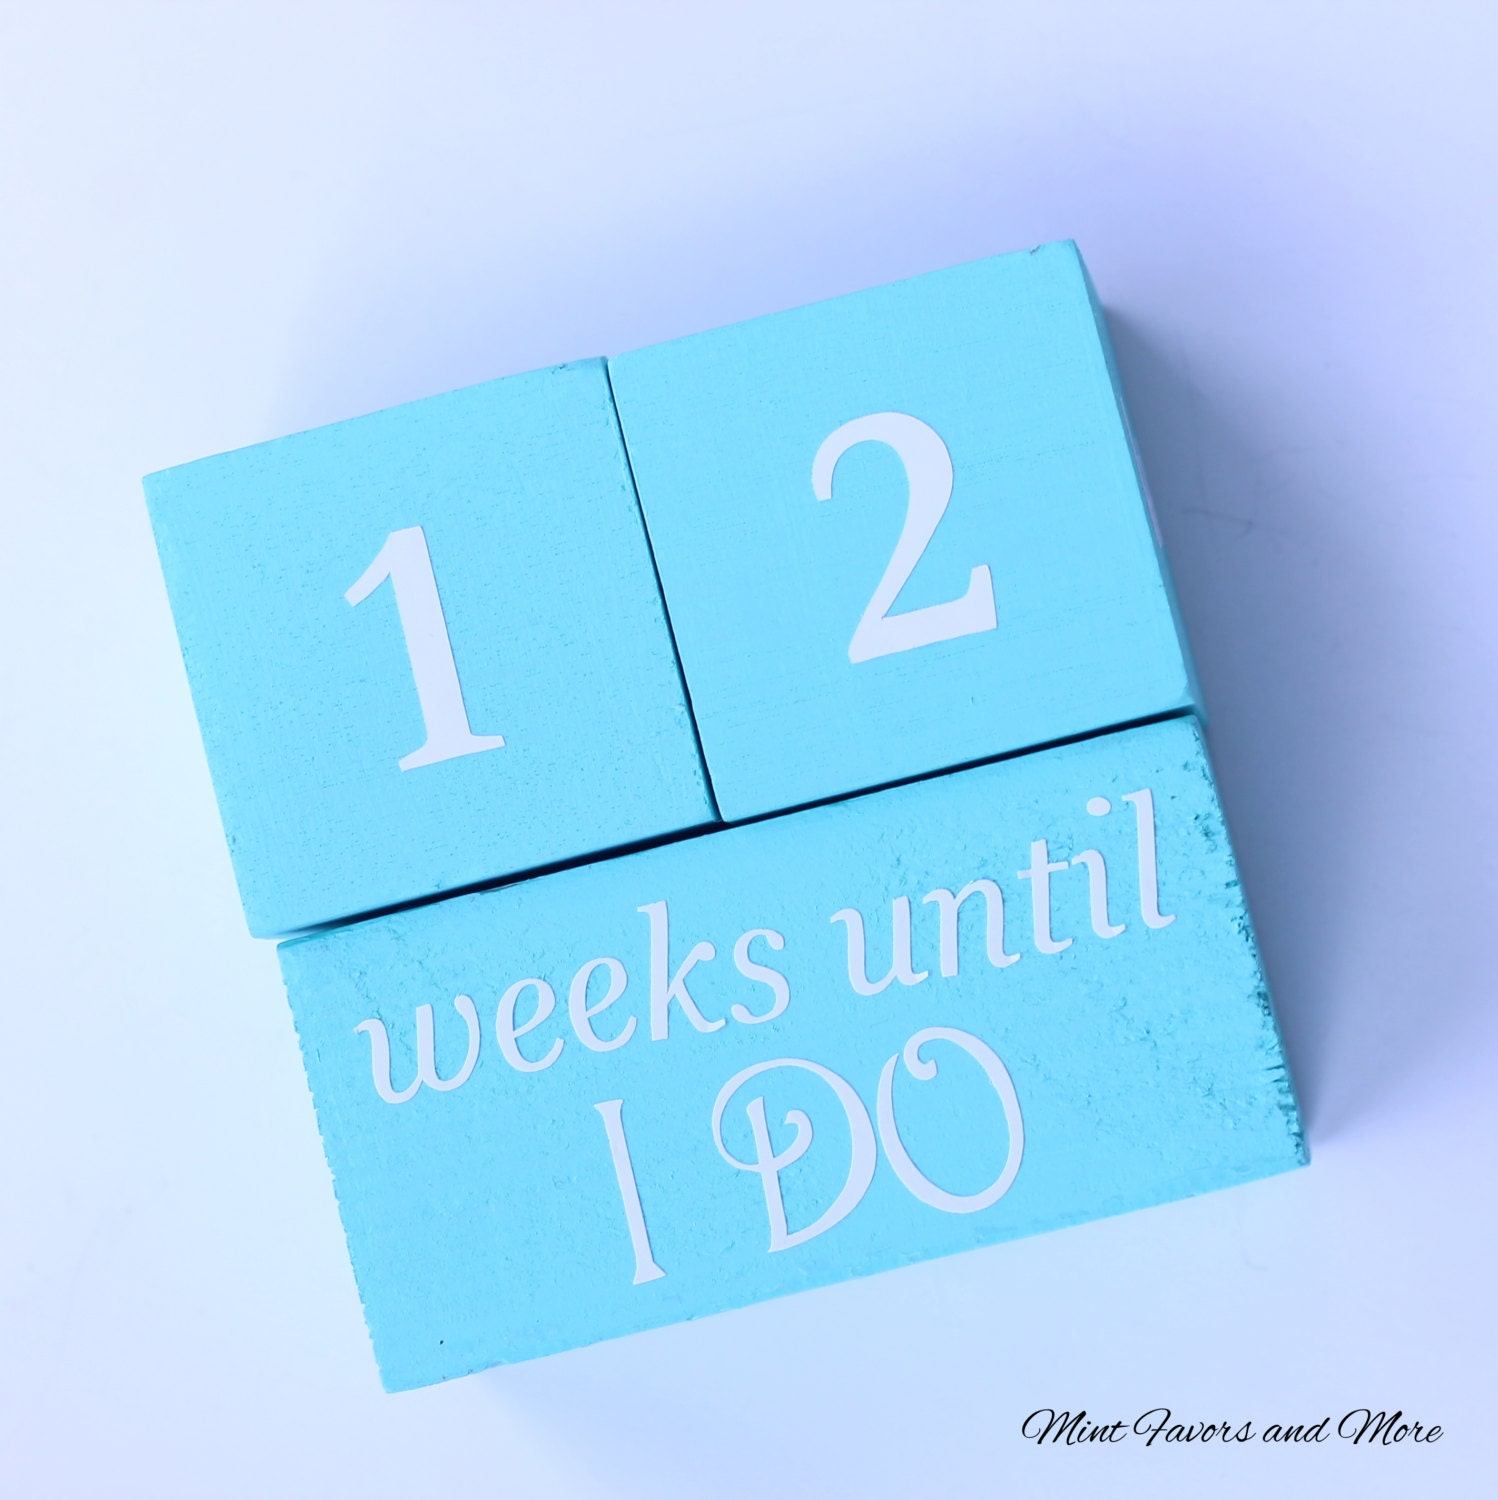 Wedding Countdown blocks bridal shower gifts engagement